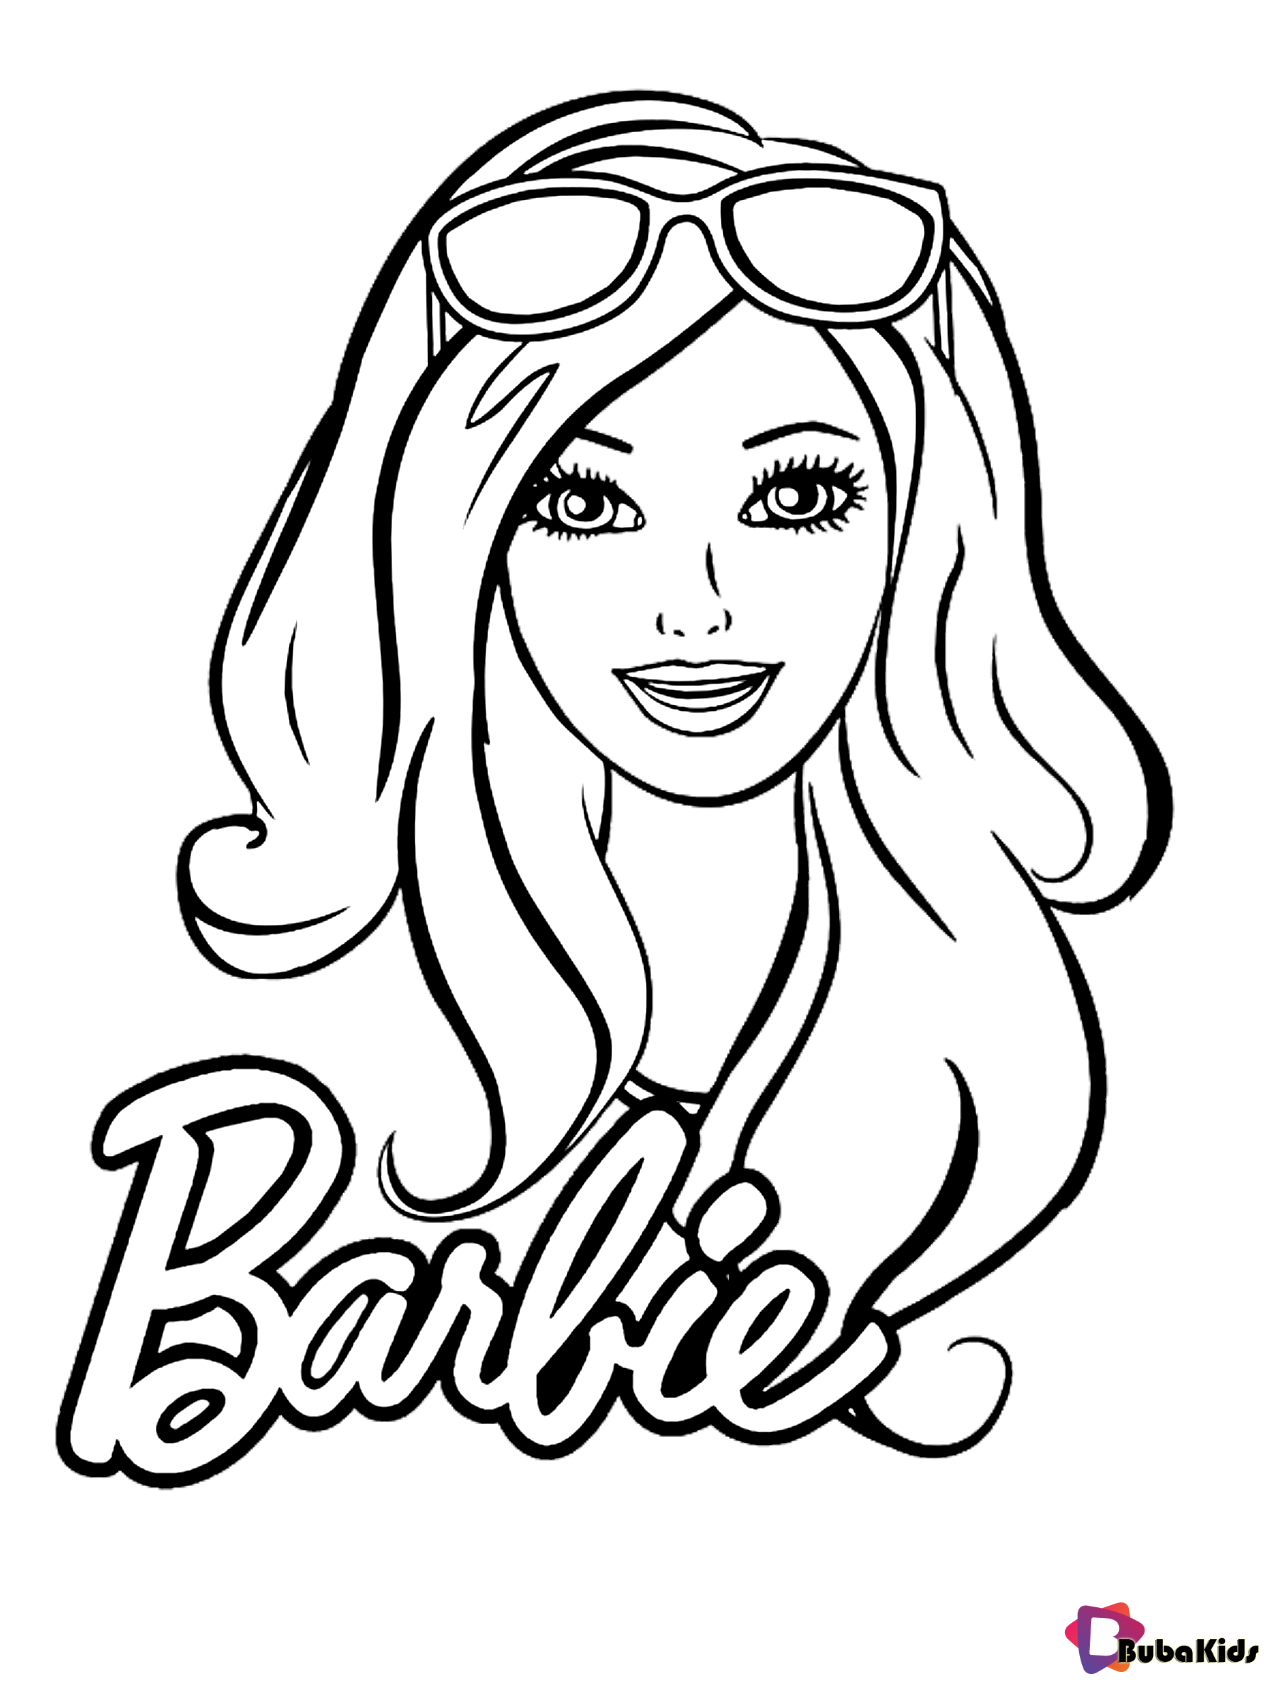 Free download beautiful barbie coloring page for girls Wallpaper